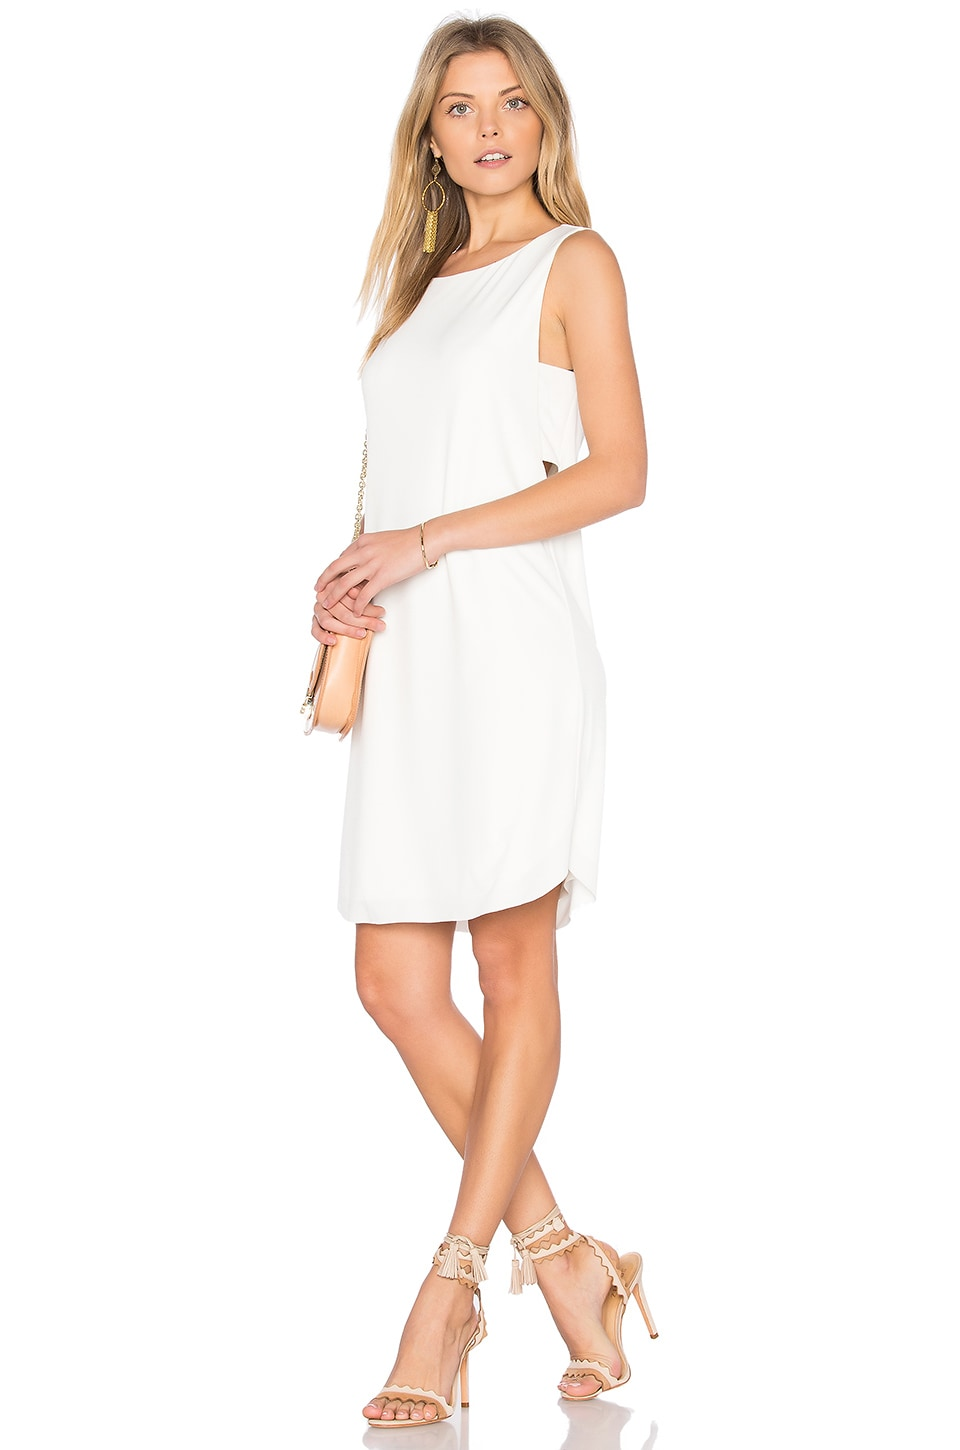 Velvet by Graham & Spencer Eugenia Tank Dress in Cream